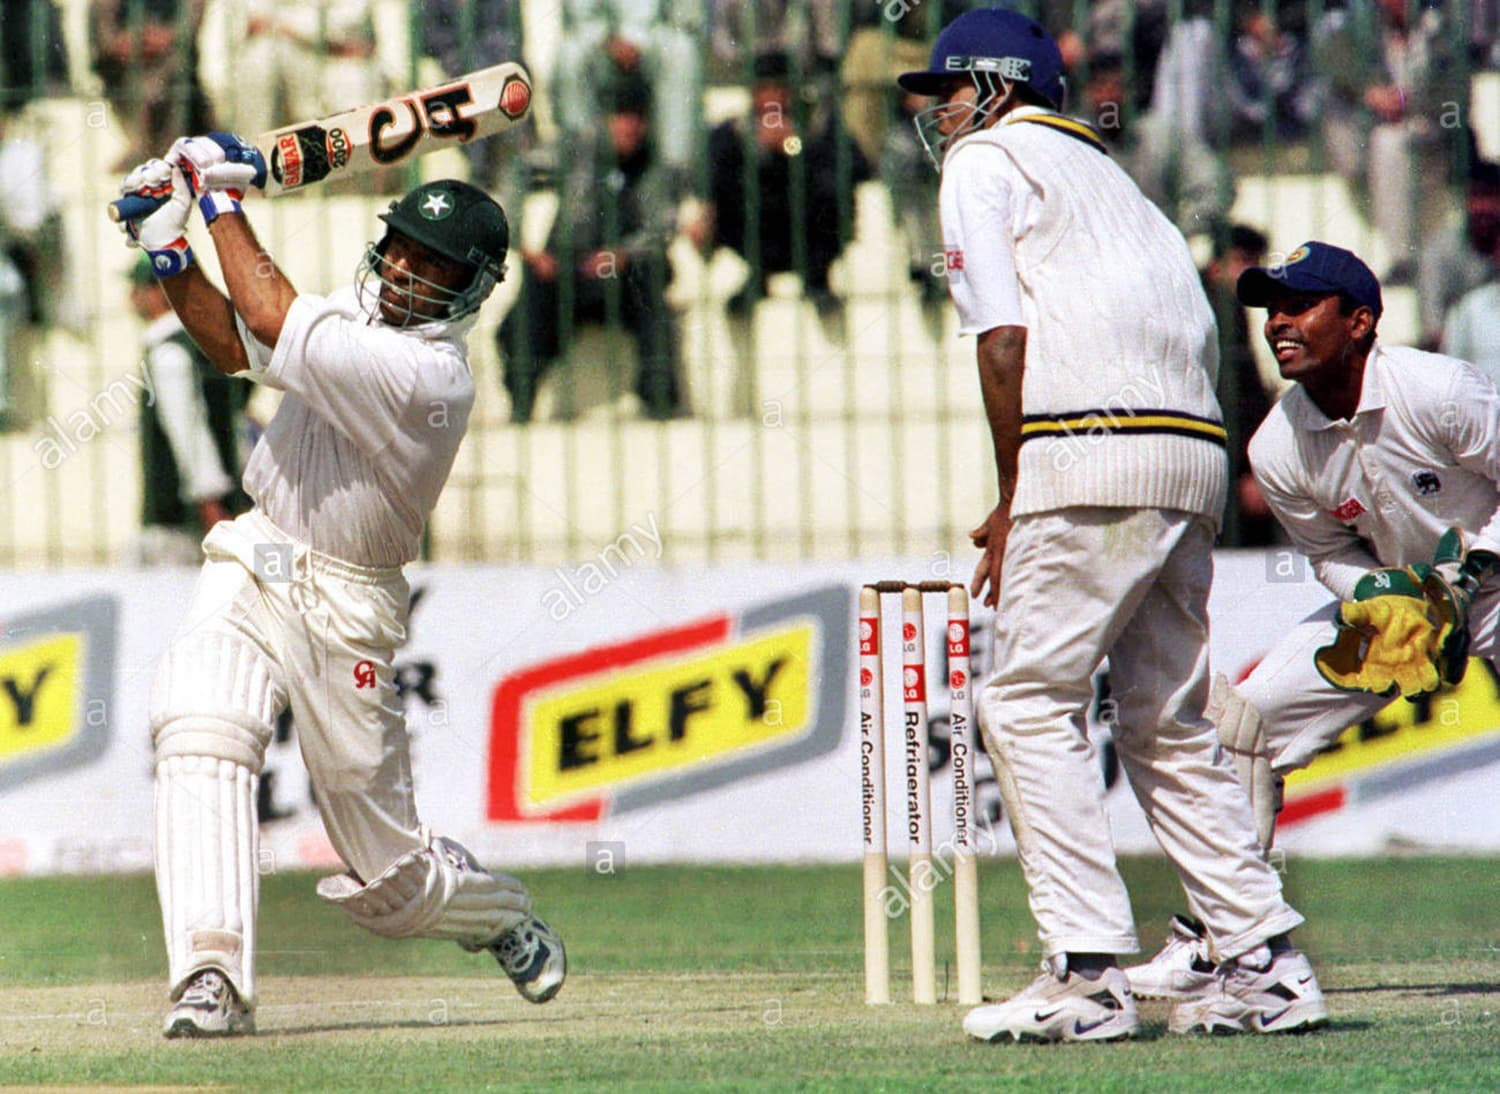 Pakistan batsman, Saeed Anwar, hitting out against Sri Lanka during a Test at Arbab Niaz Stadium in the late 1990s. (Pic: Alamy)